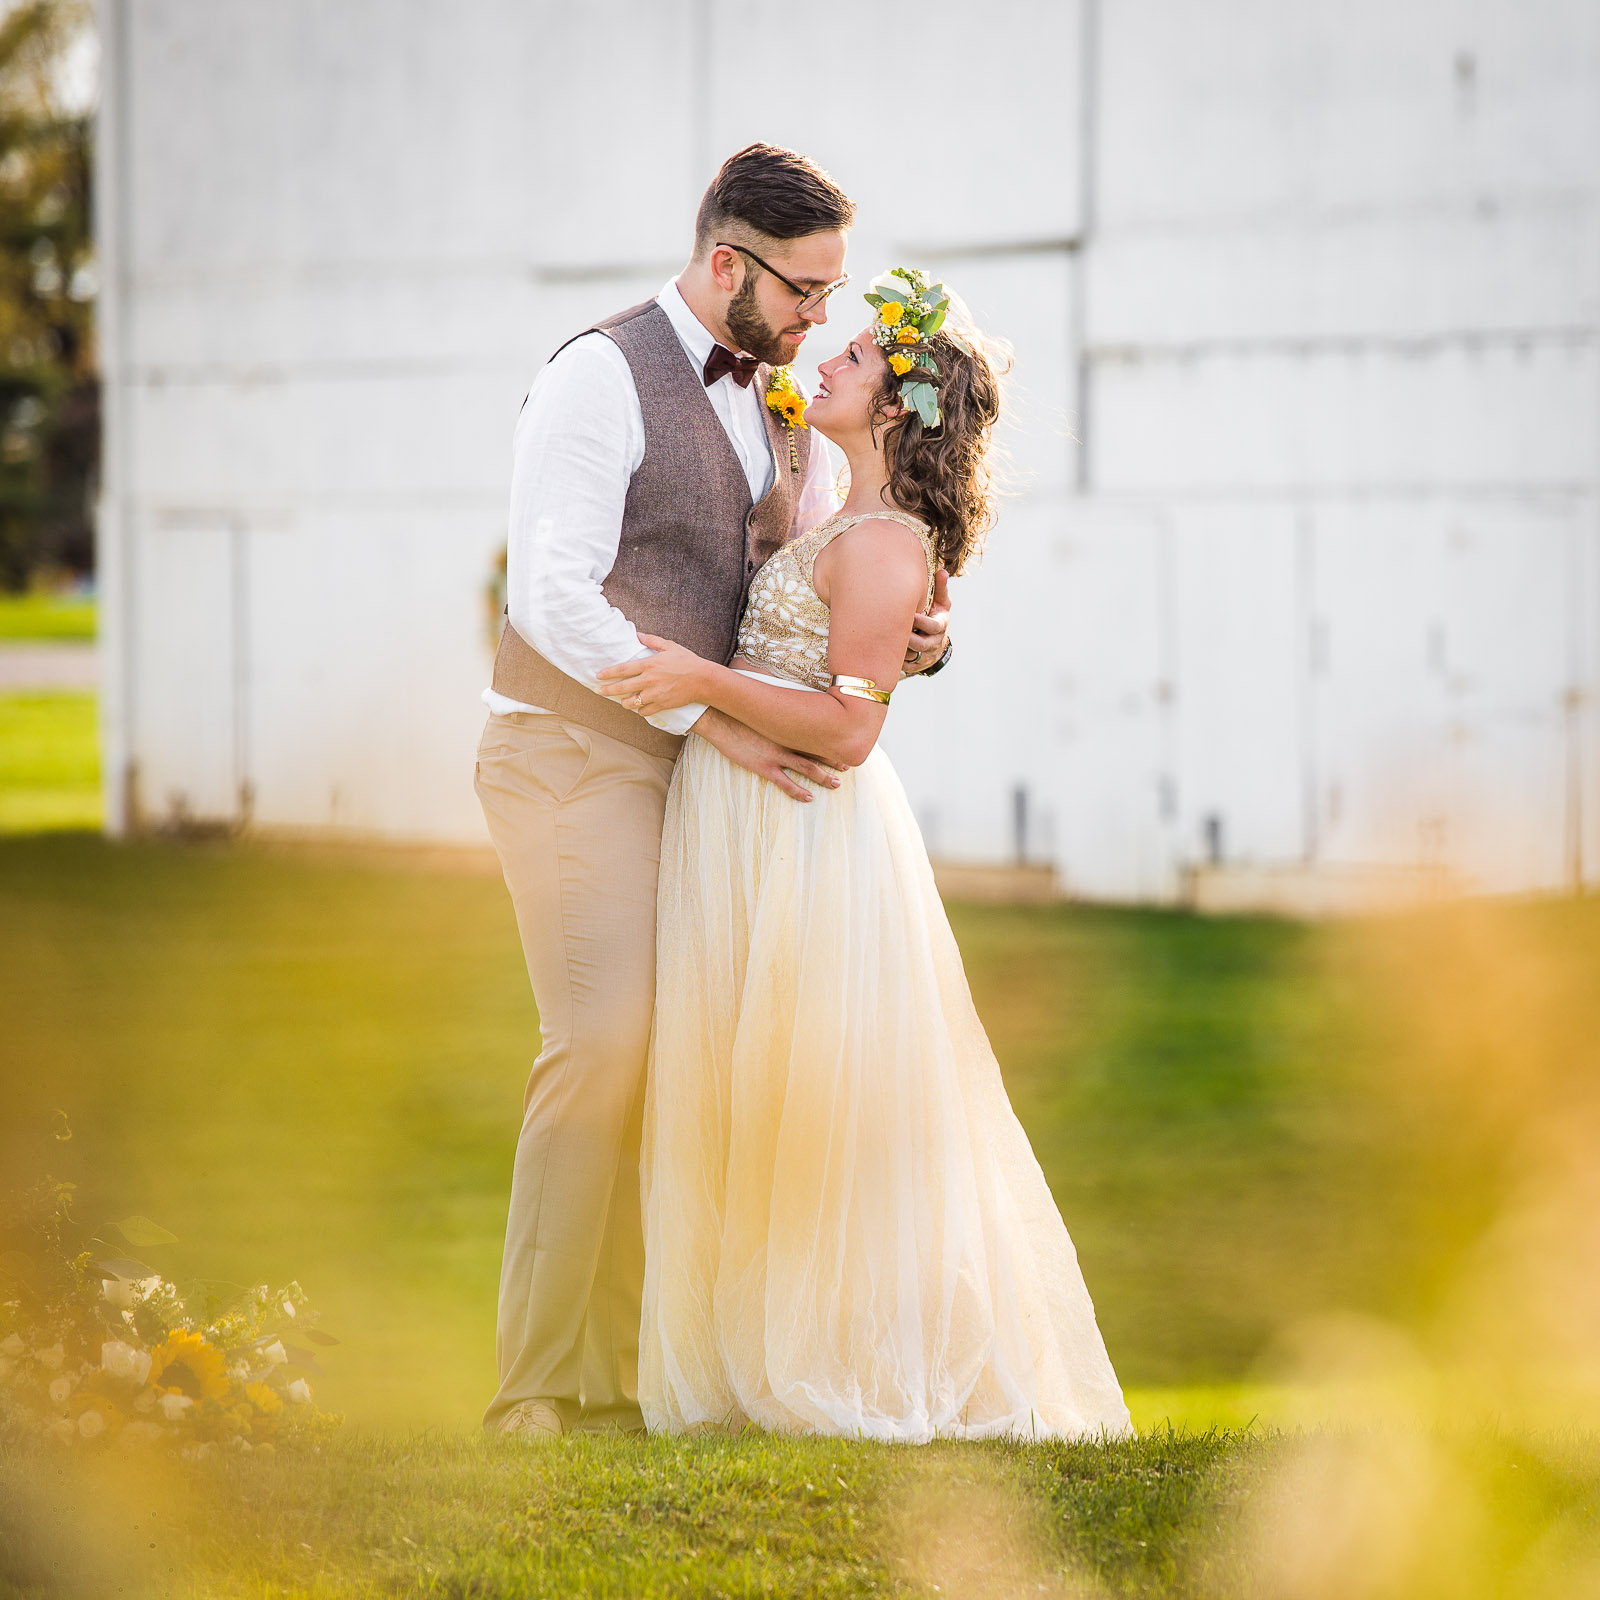 Lauren & Jonathan // Wedding in Brunswick